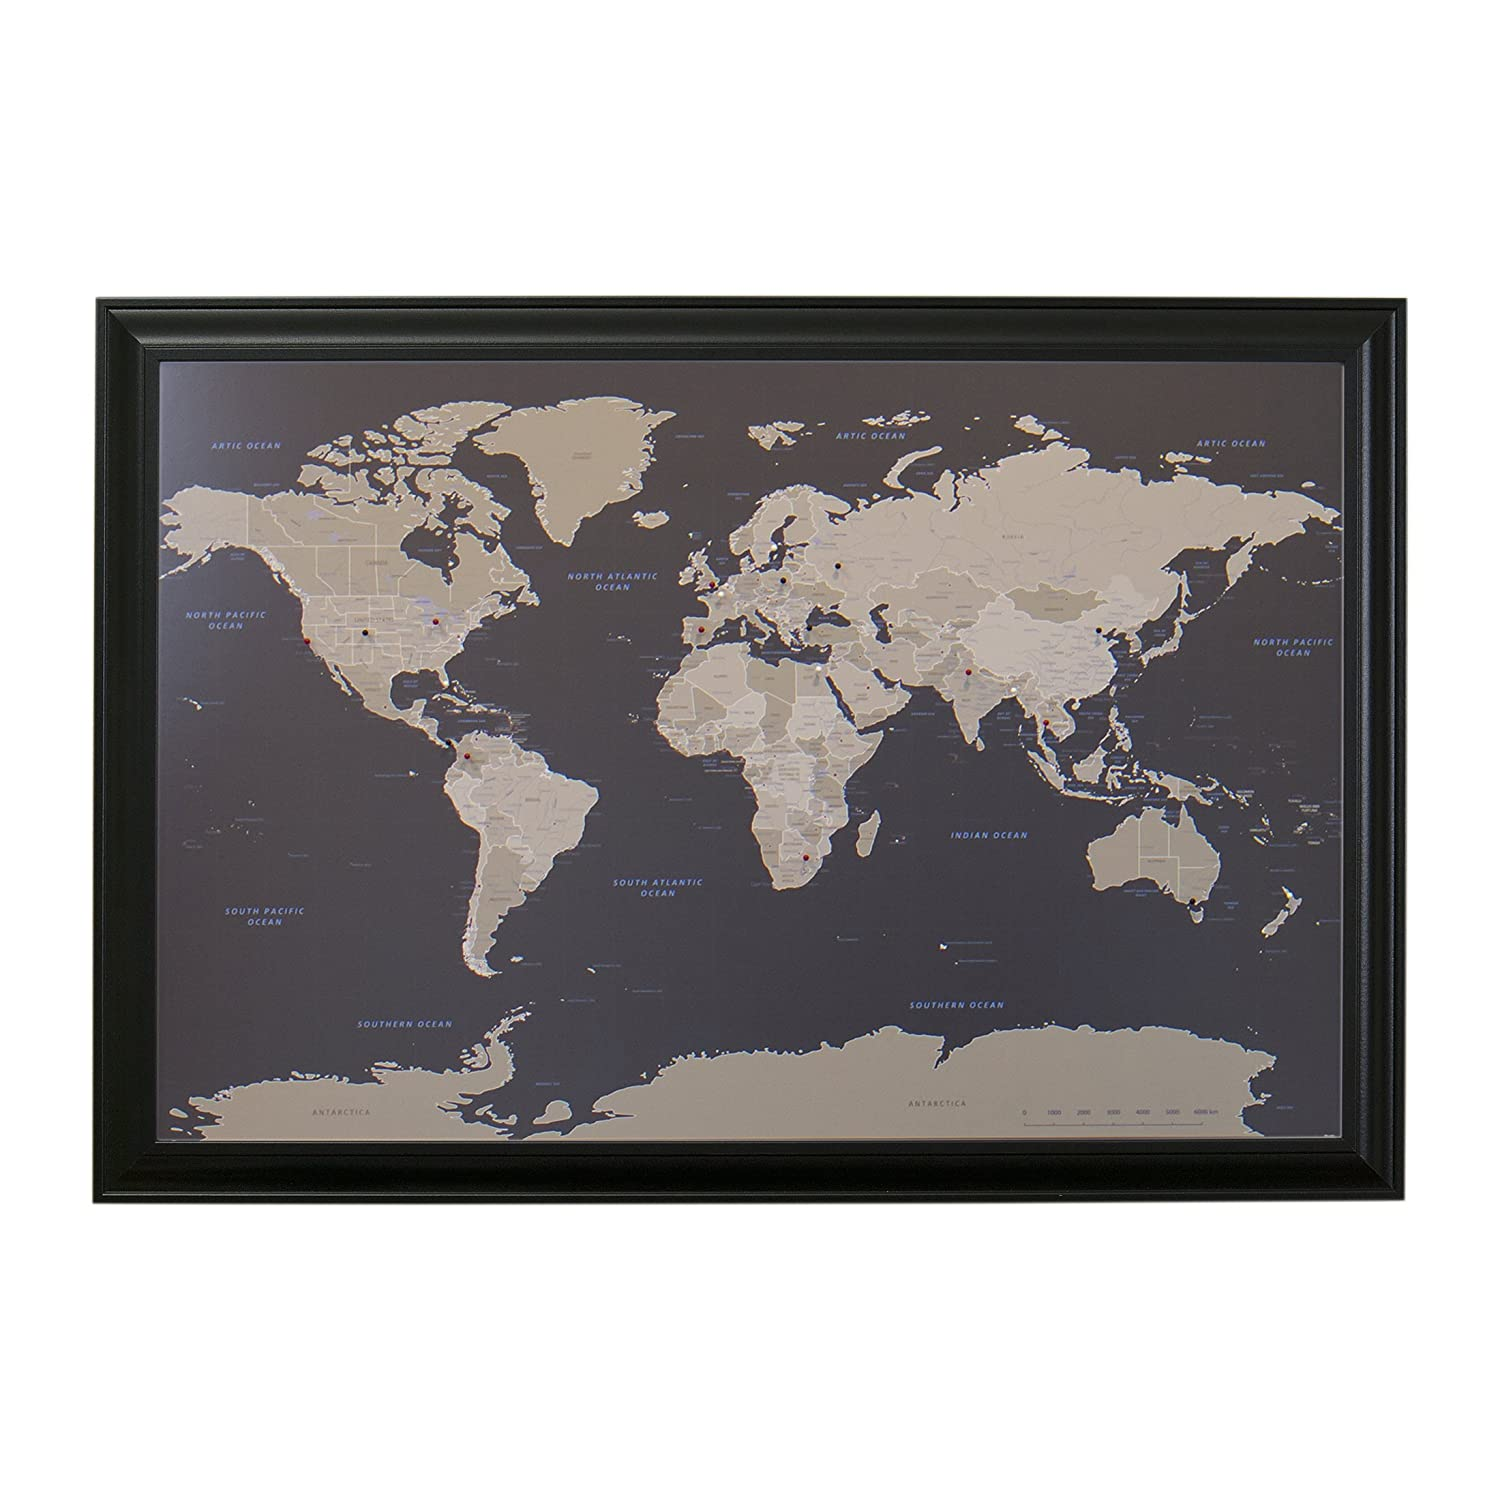 Amazon Push Pin Travel Maps – World Travel Map With Push Pins